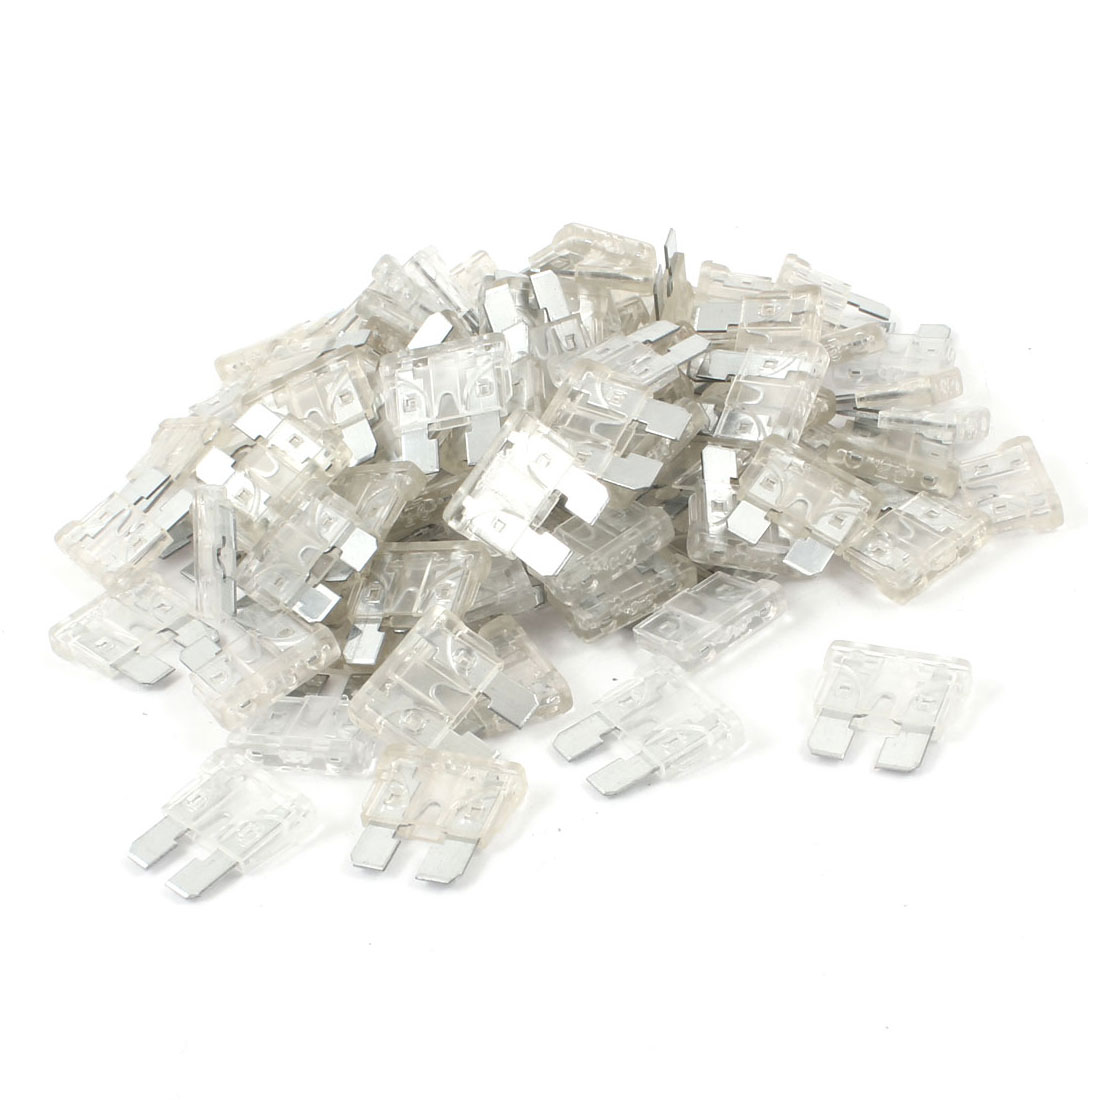 25A Car Truck Automotive Clear Fast Acting Blade Fuse 100 Pcs